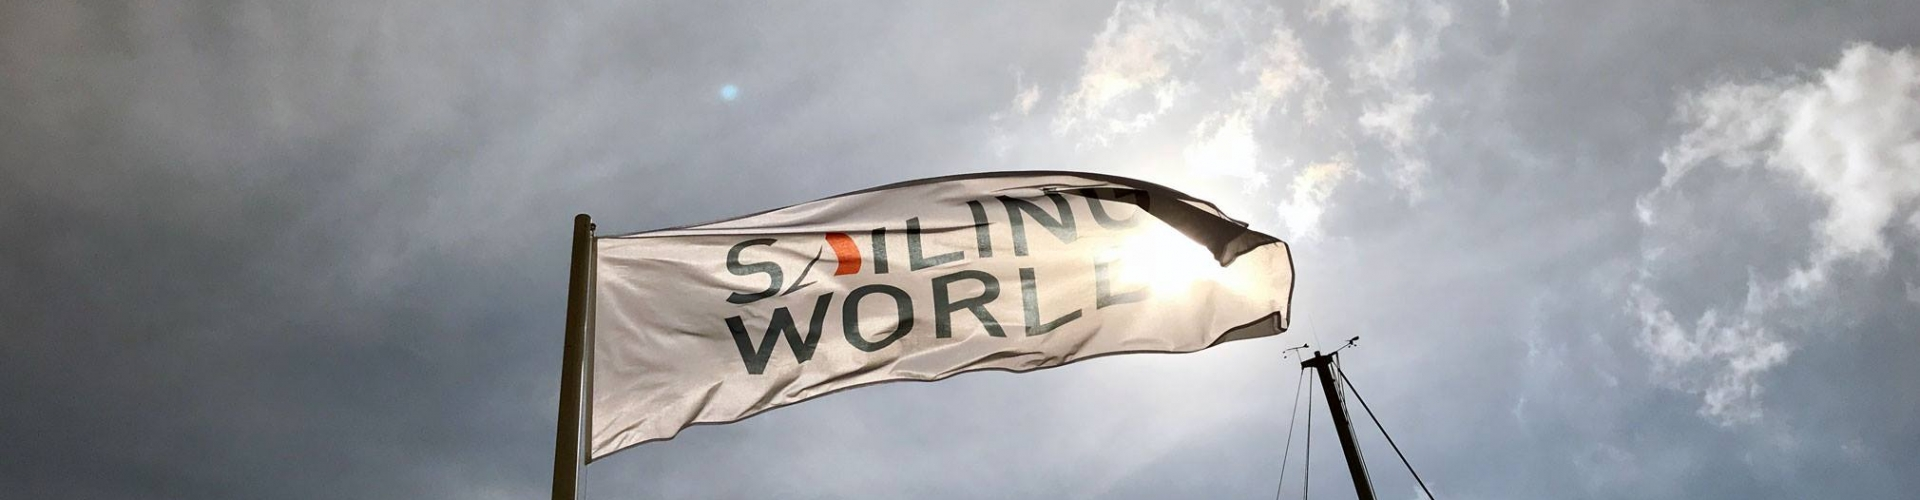 sailingworld-vlag